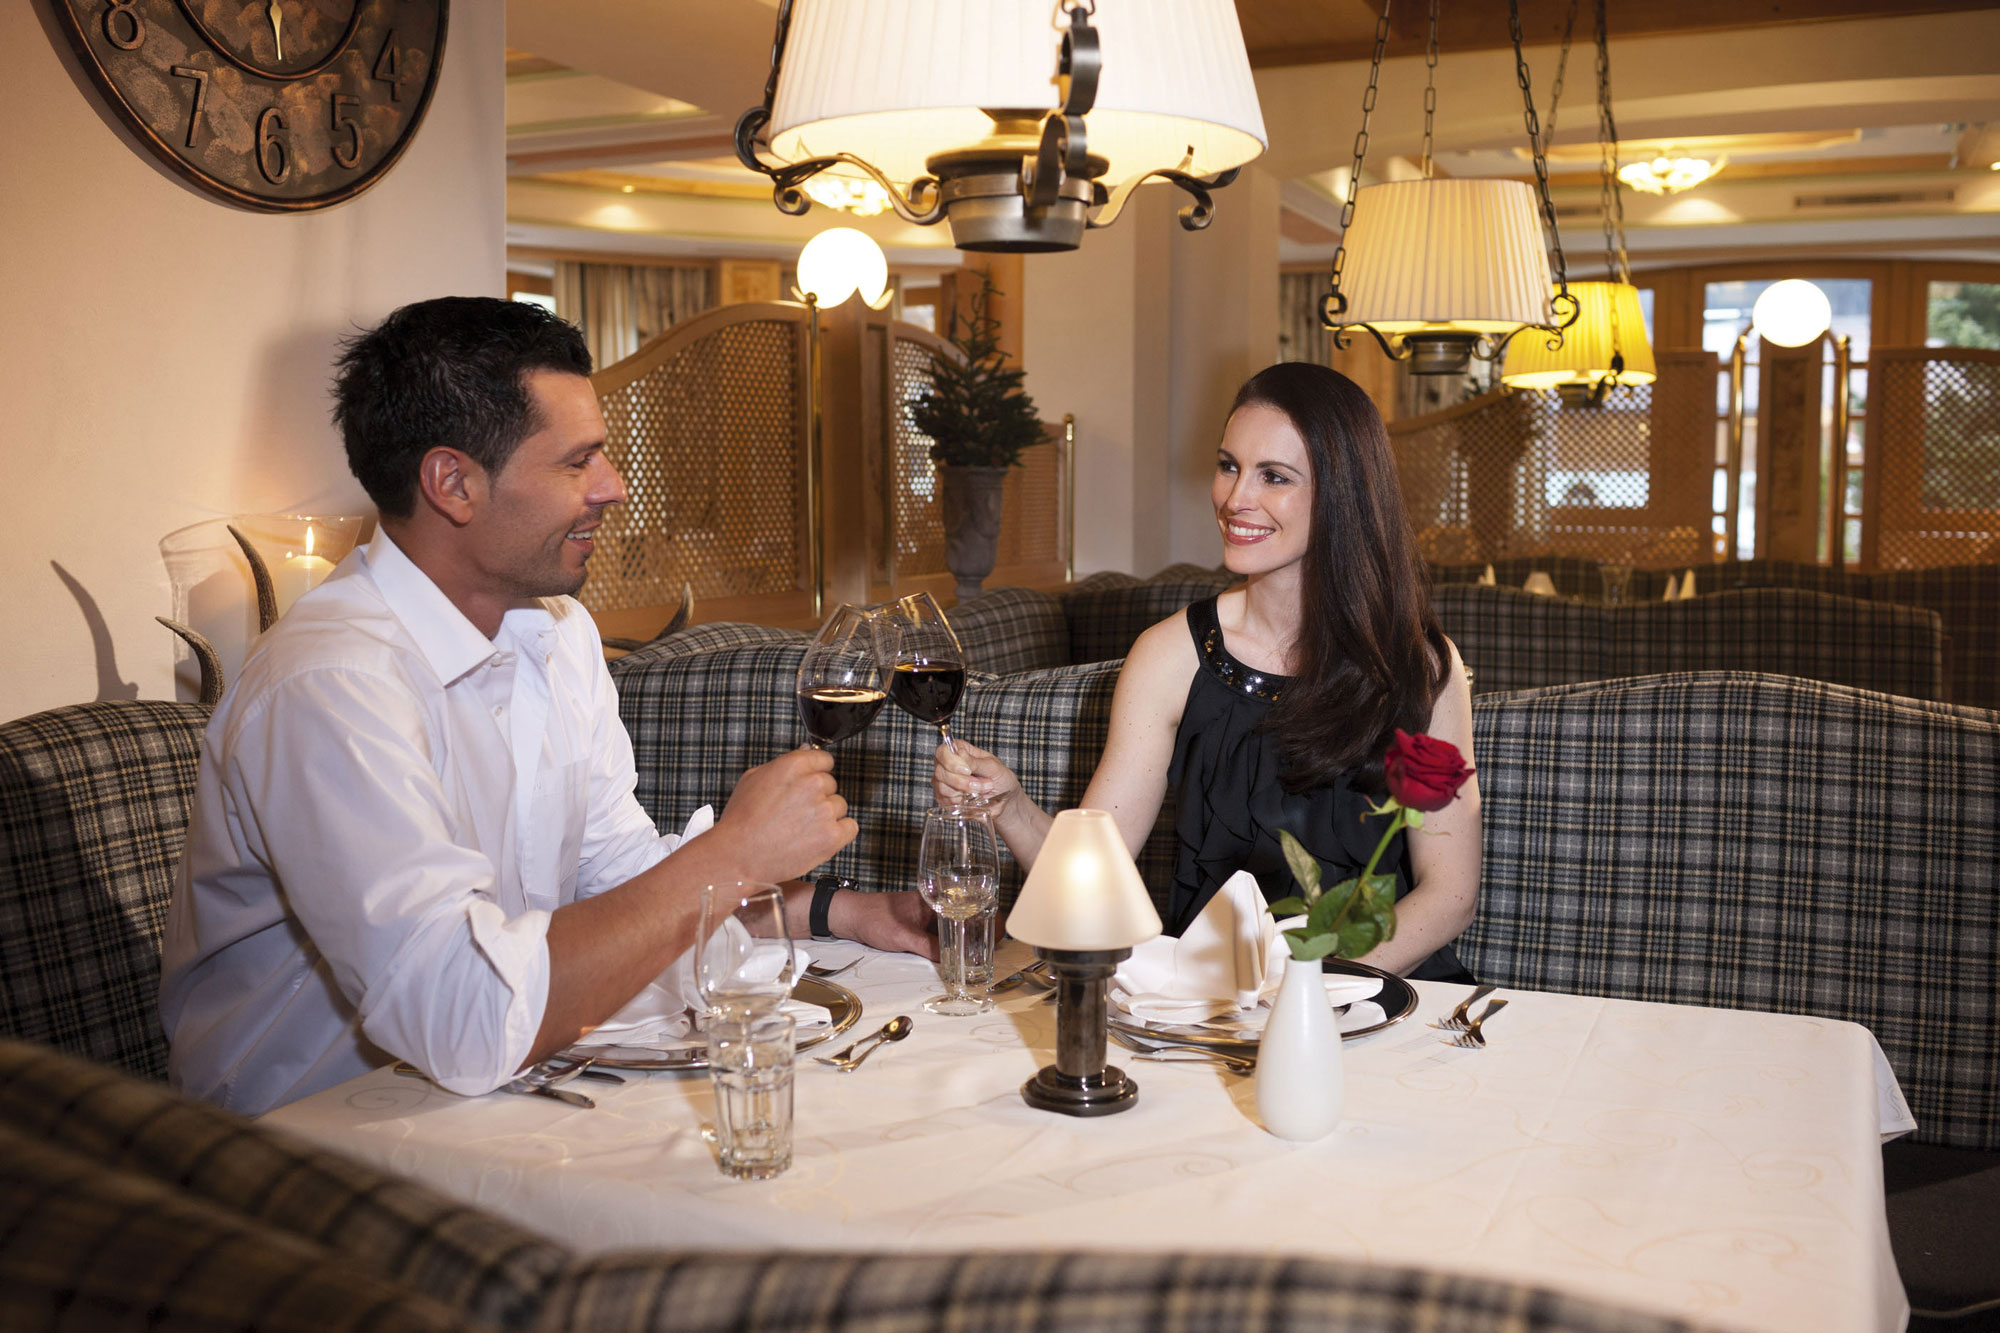 Gourmet Hotel Kindl in the Stubai Valley – Enticing cuisine